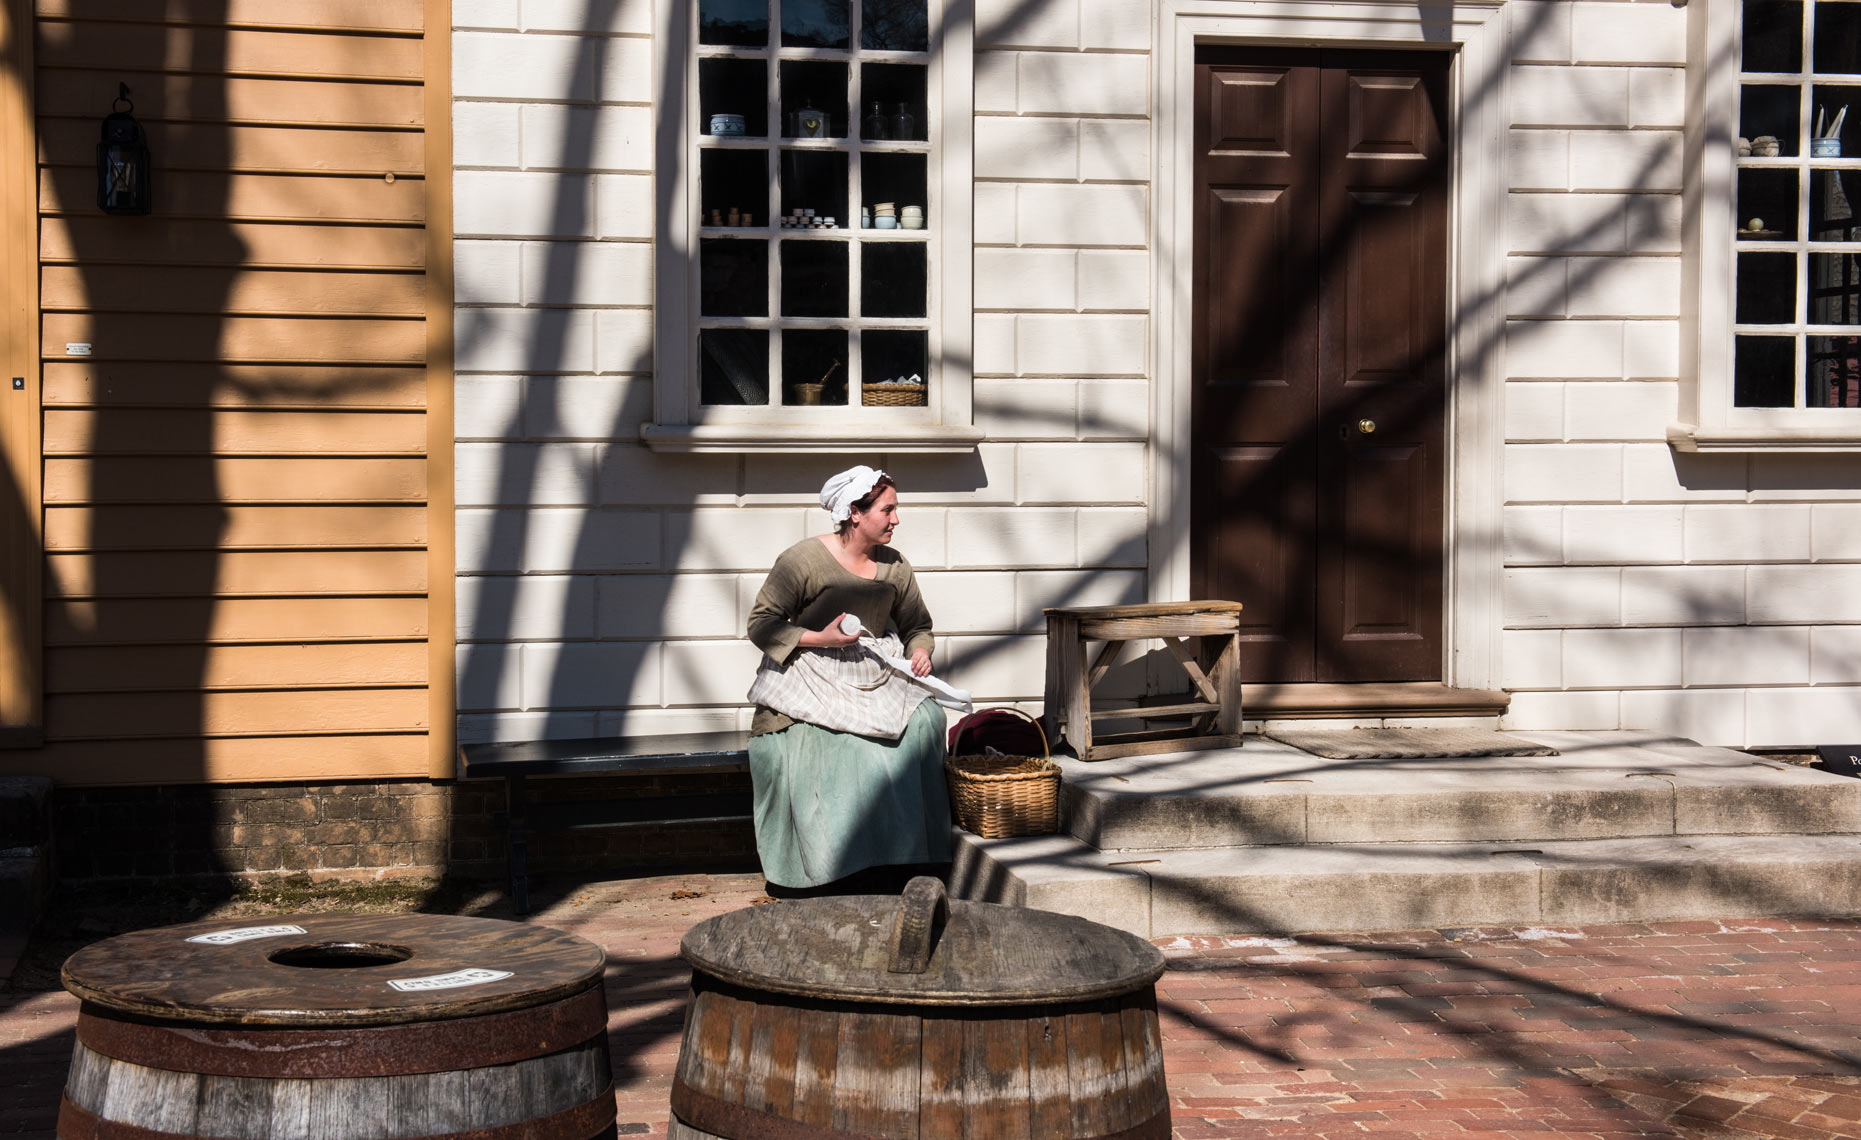 Colton-travel-photography-williamsburg-va-108